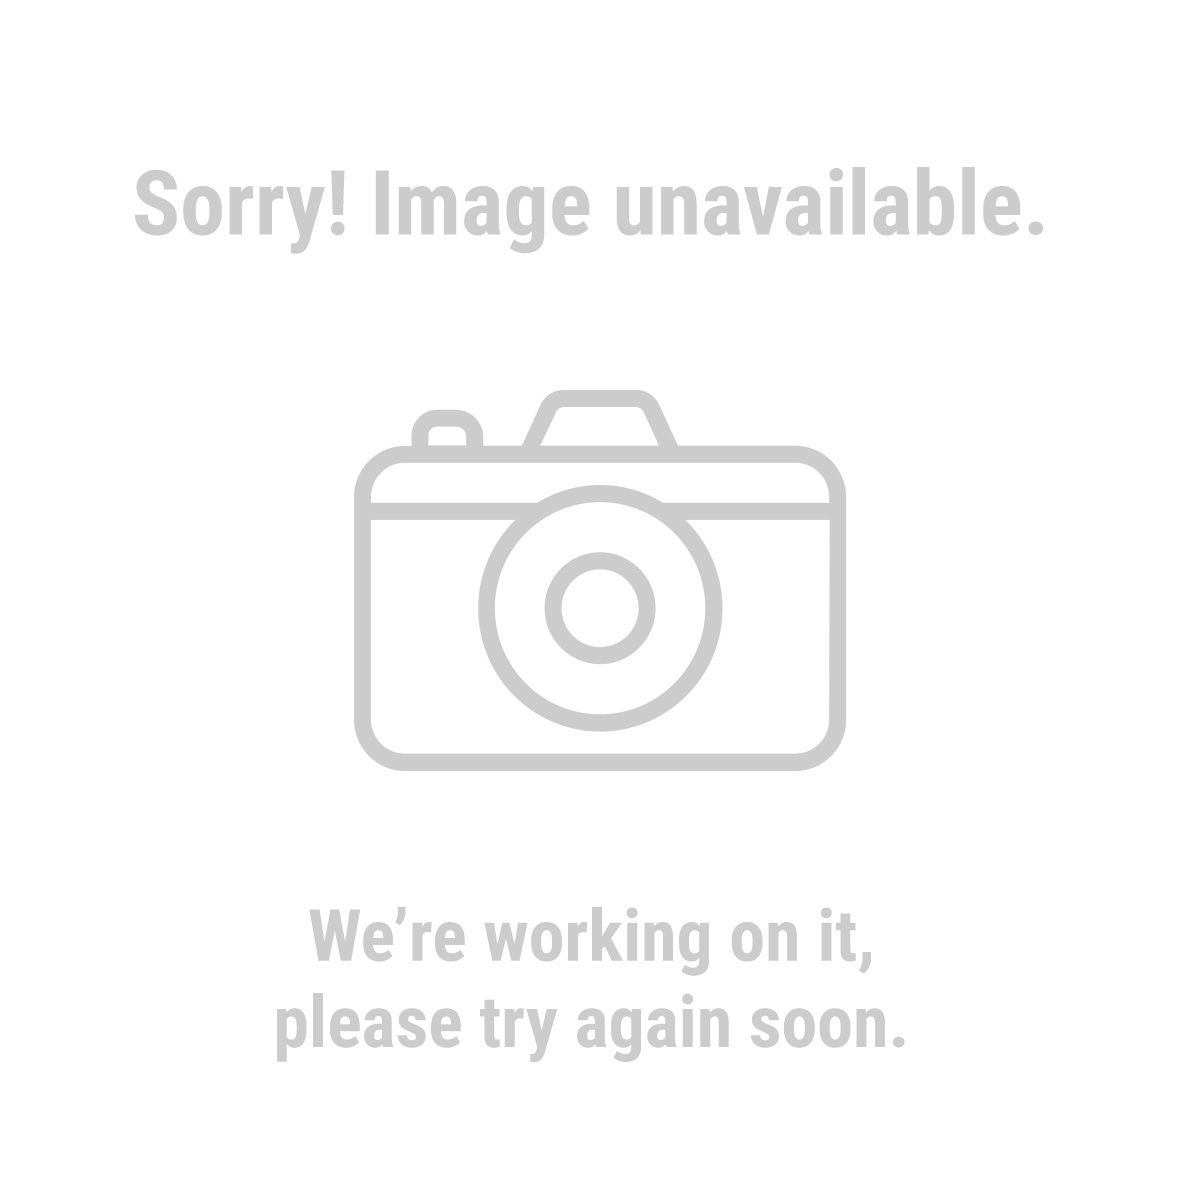 soaker hose 3 4 in x 50 ft flat soaker hose